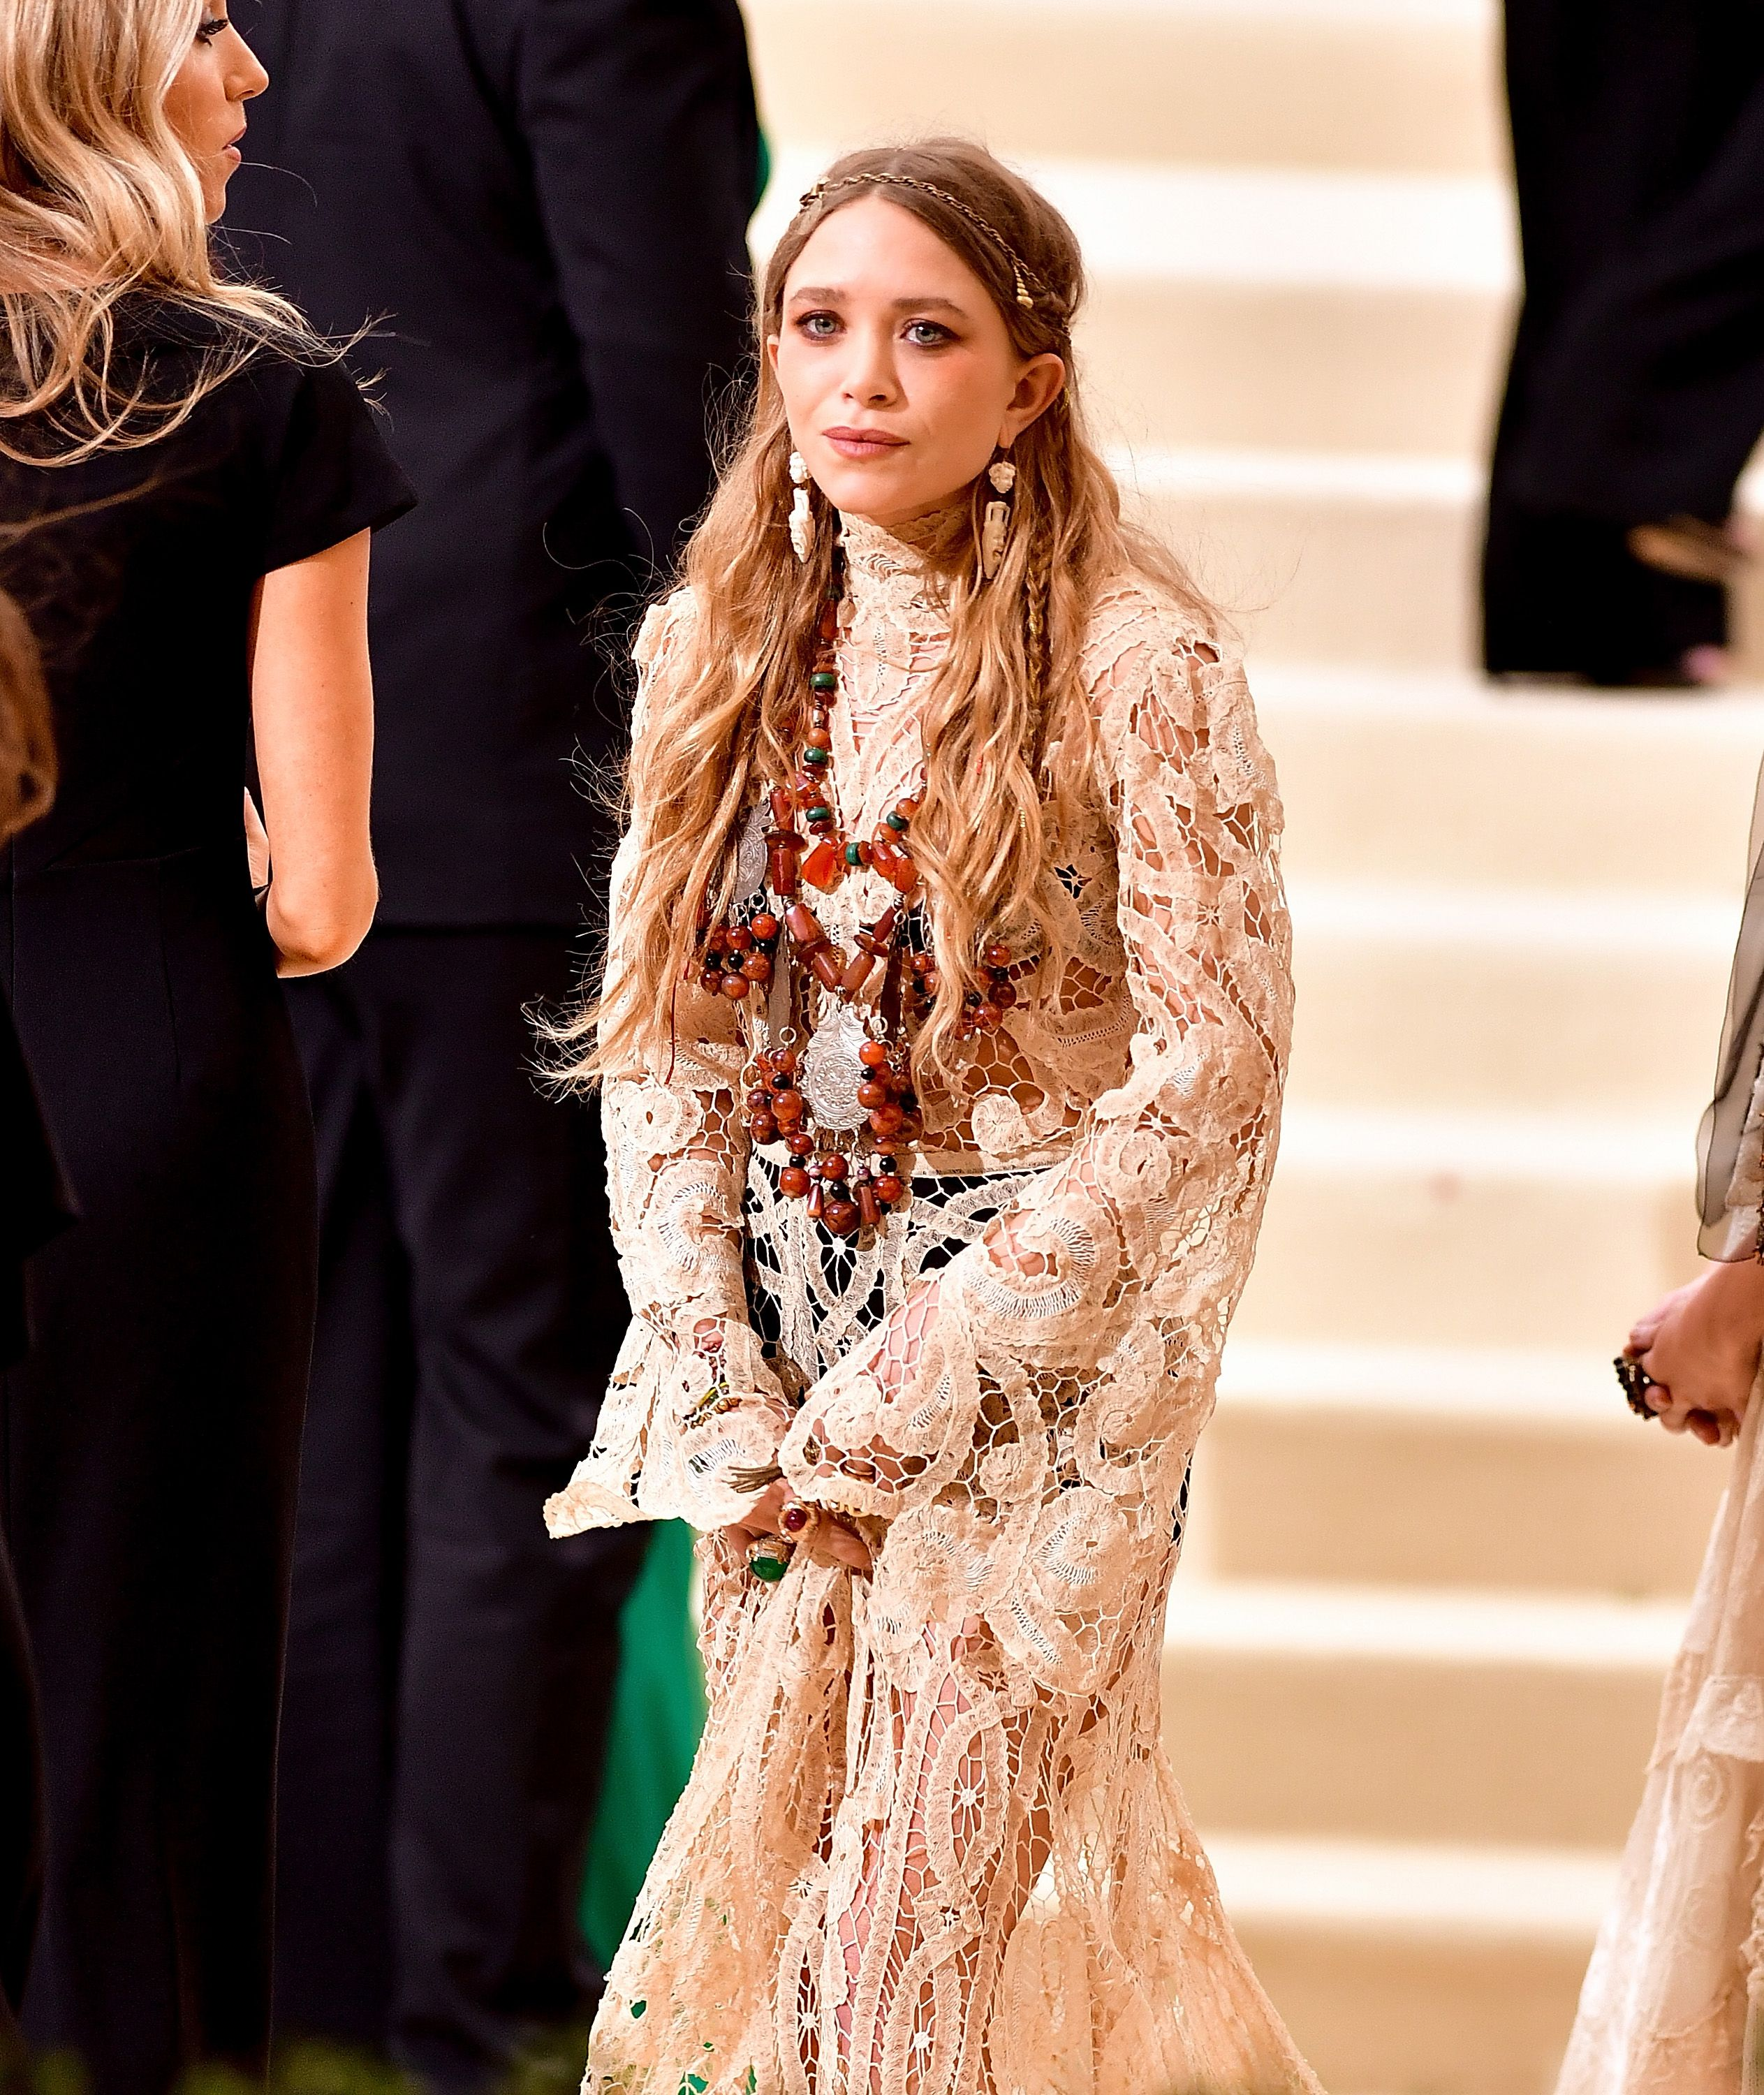 NEW YORK, NY - MAY 01: Mary-Kate Olsen attends the 'Rei Kawakubo/Comme des Garcons: Art Of The In-Between' Costume Institute Gala at Metropolitan Museum of Art on May 1, 2017 in New York City. (Photo by James Devaney/GC Images,